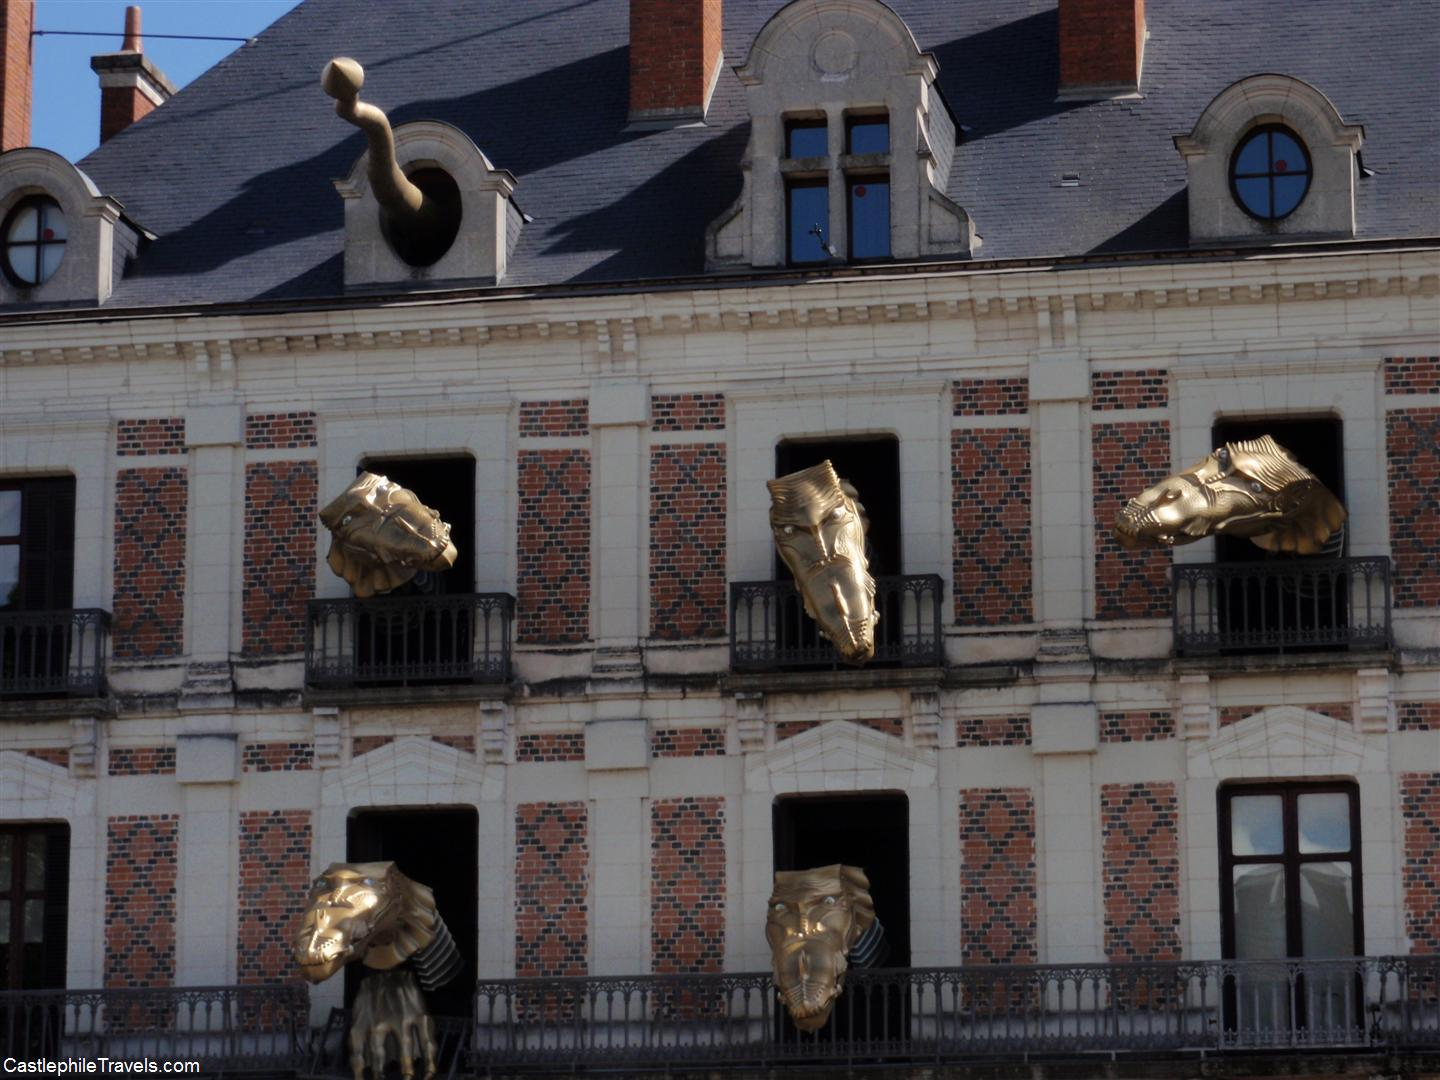 The strange dragons of the Maison de la Magie